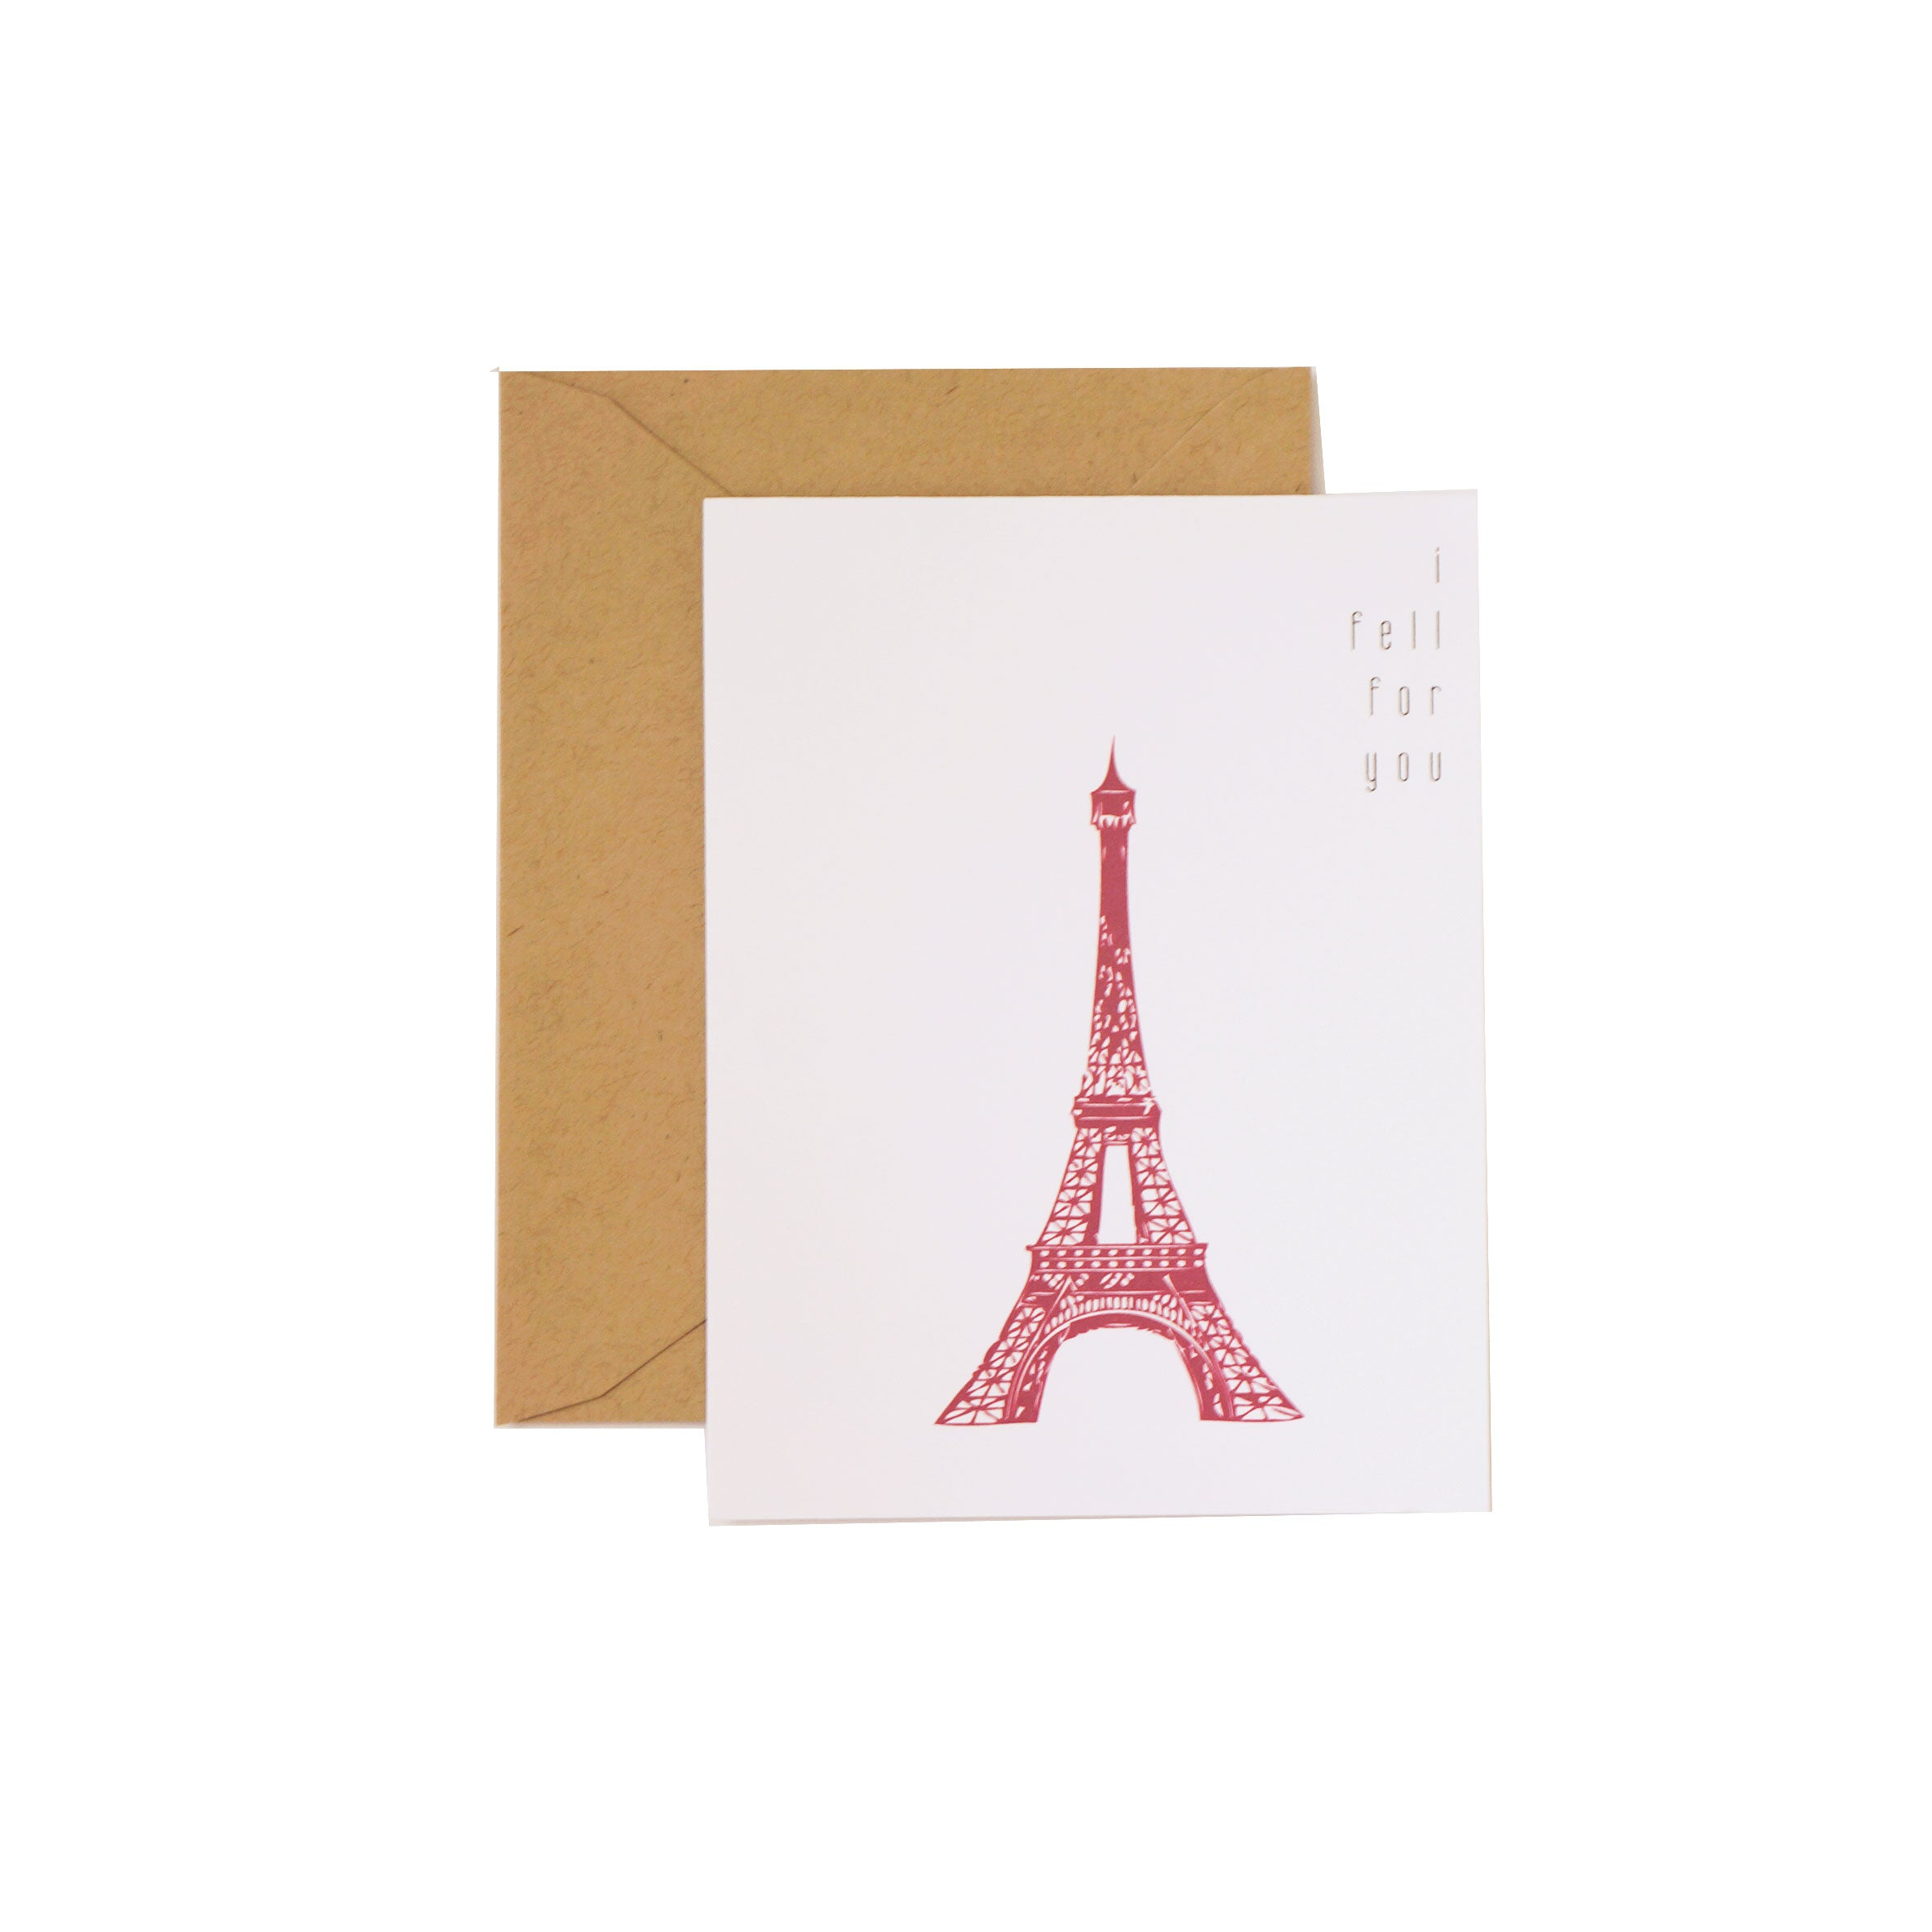 I Fell For You Valentine's Day Card French Inspired Paris